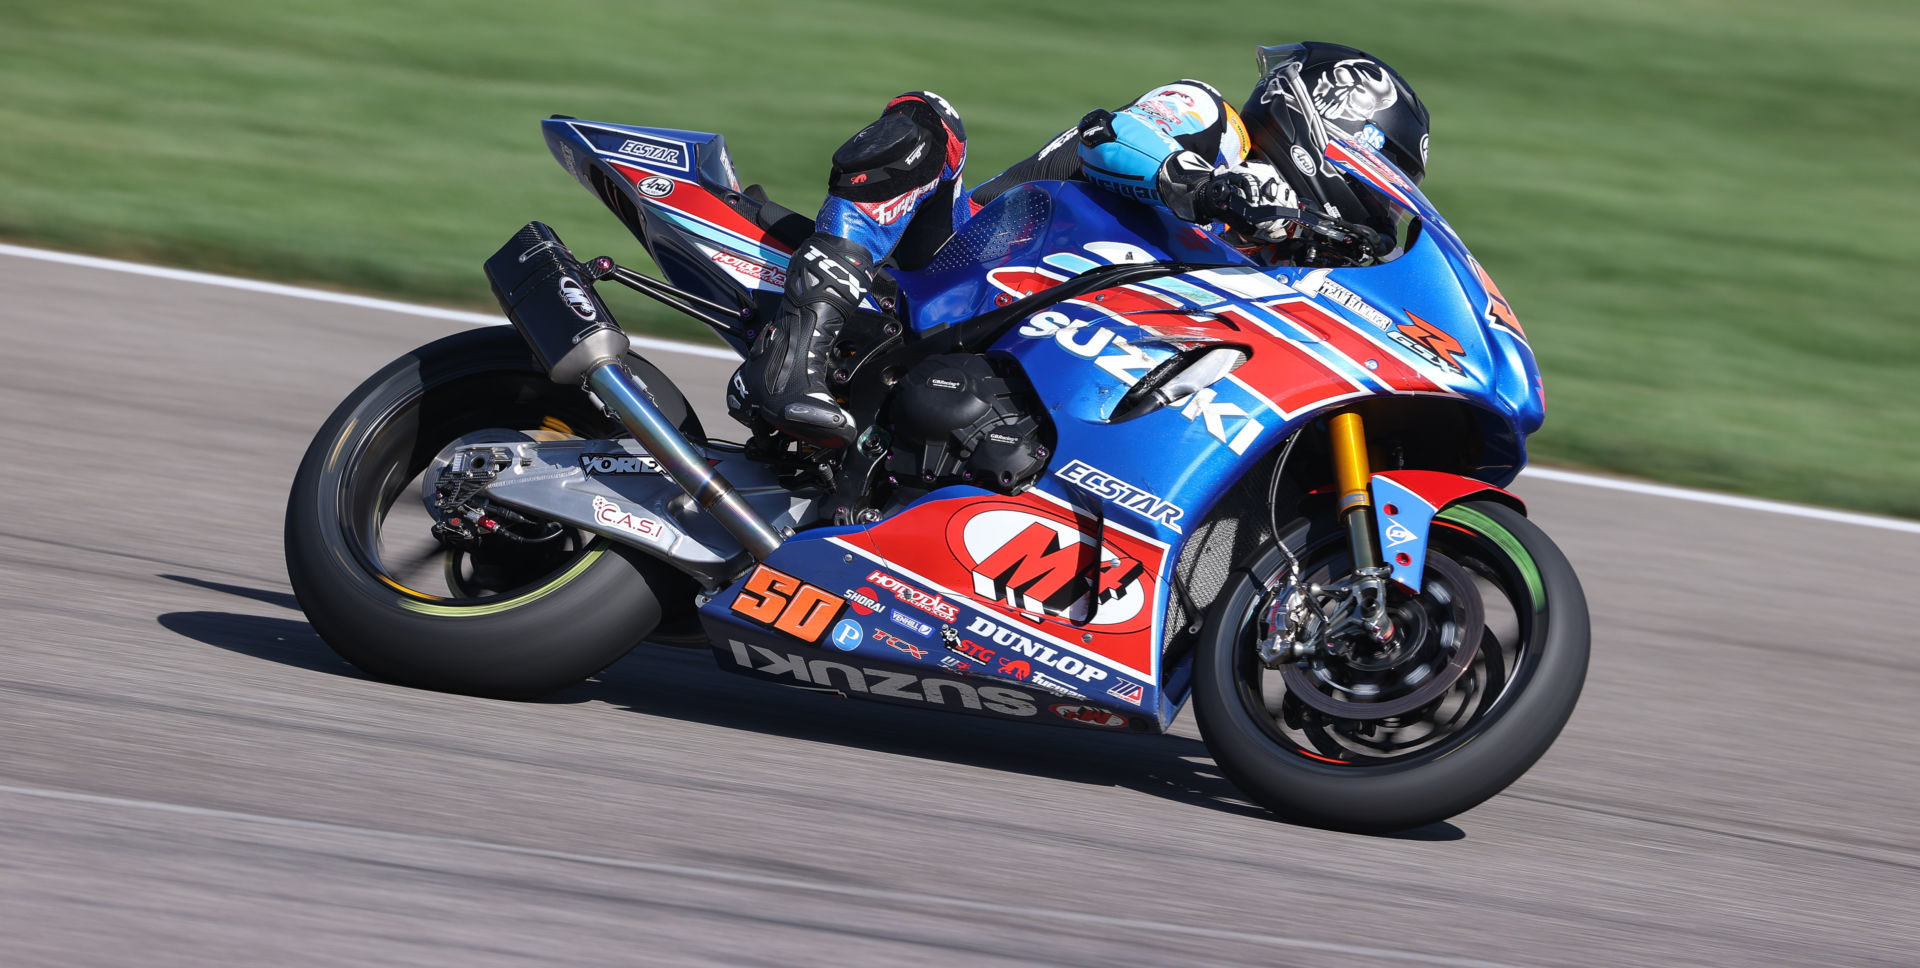 Bobby Fong arrives at WeatherTech Raceway Laguna Seca with the hot hand after winning two of the three HONOS Superbike races at Indianapolis Motor Speedway. Photo by Brian J. Nelson, courtesy MotoAmerica.